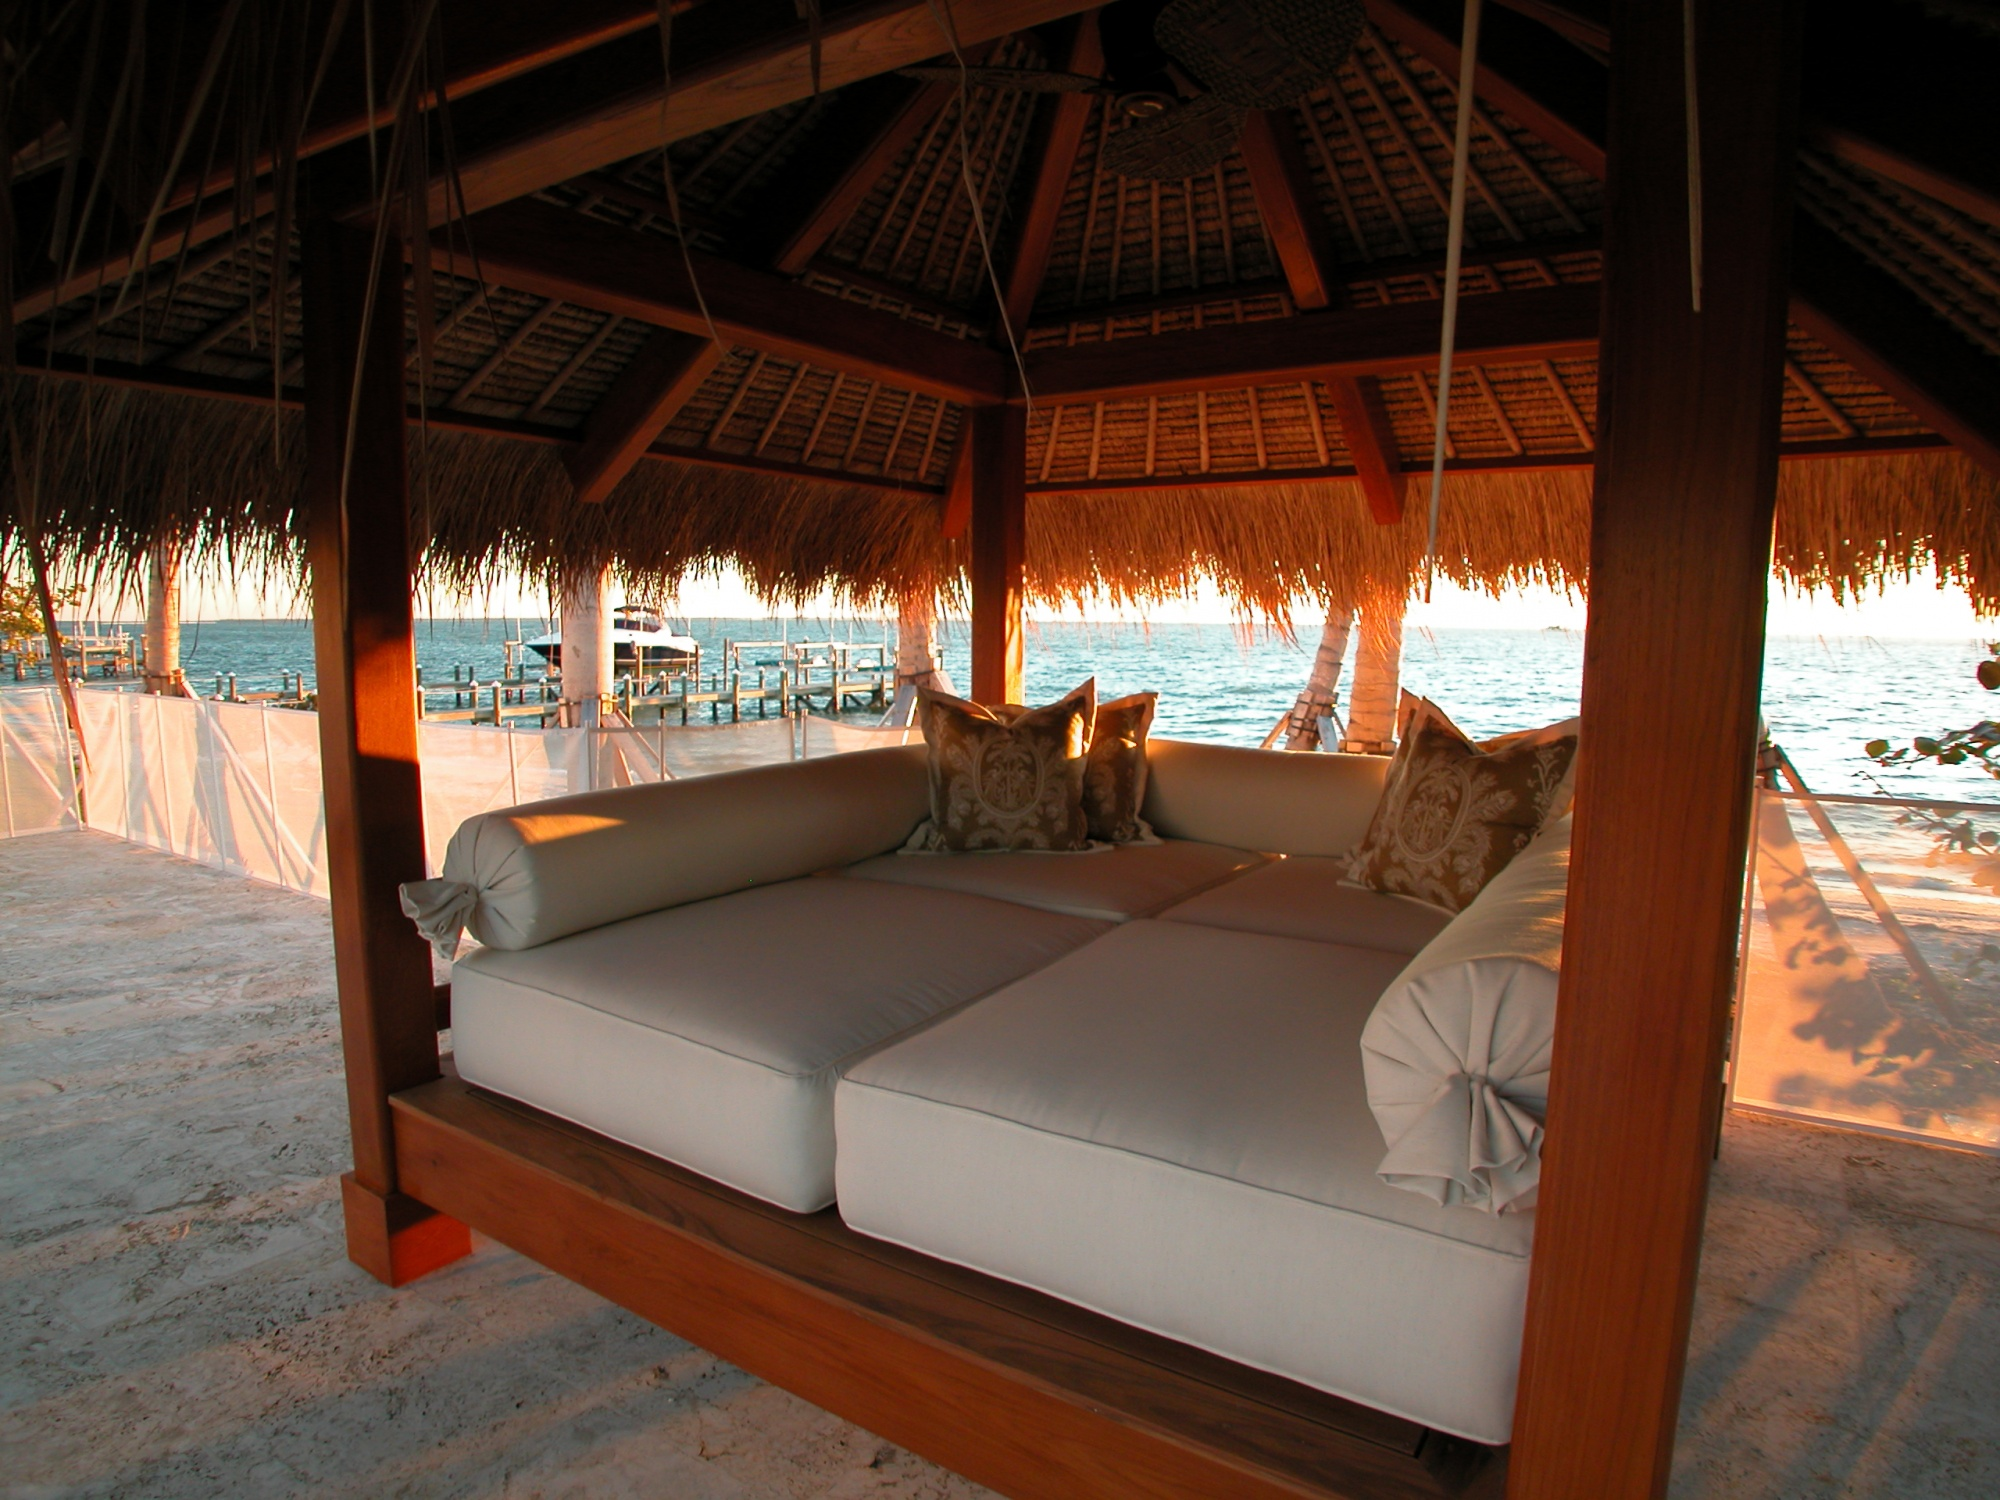 Authentic thatched roof with bamboo and mahogany rafters provide shelter on this oceanside day bed.